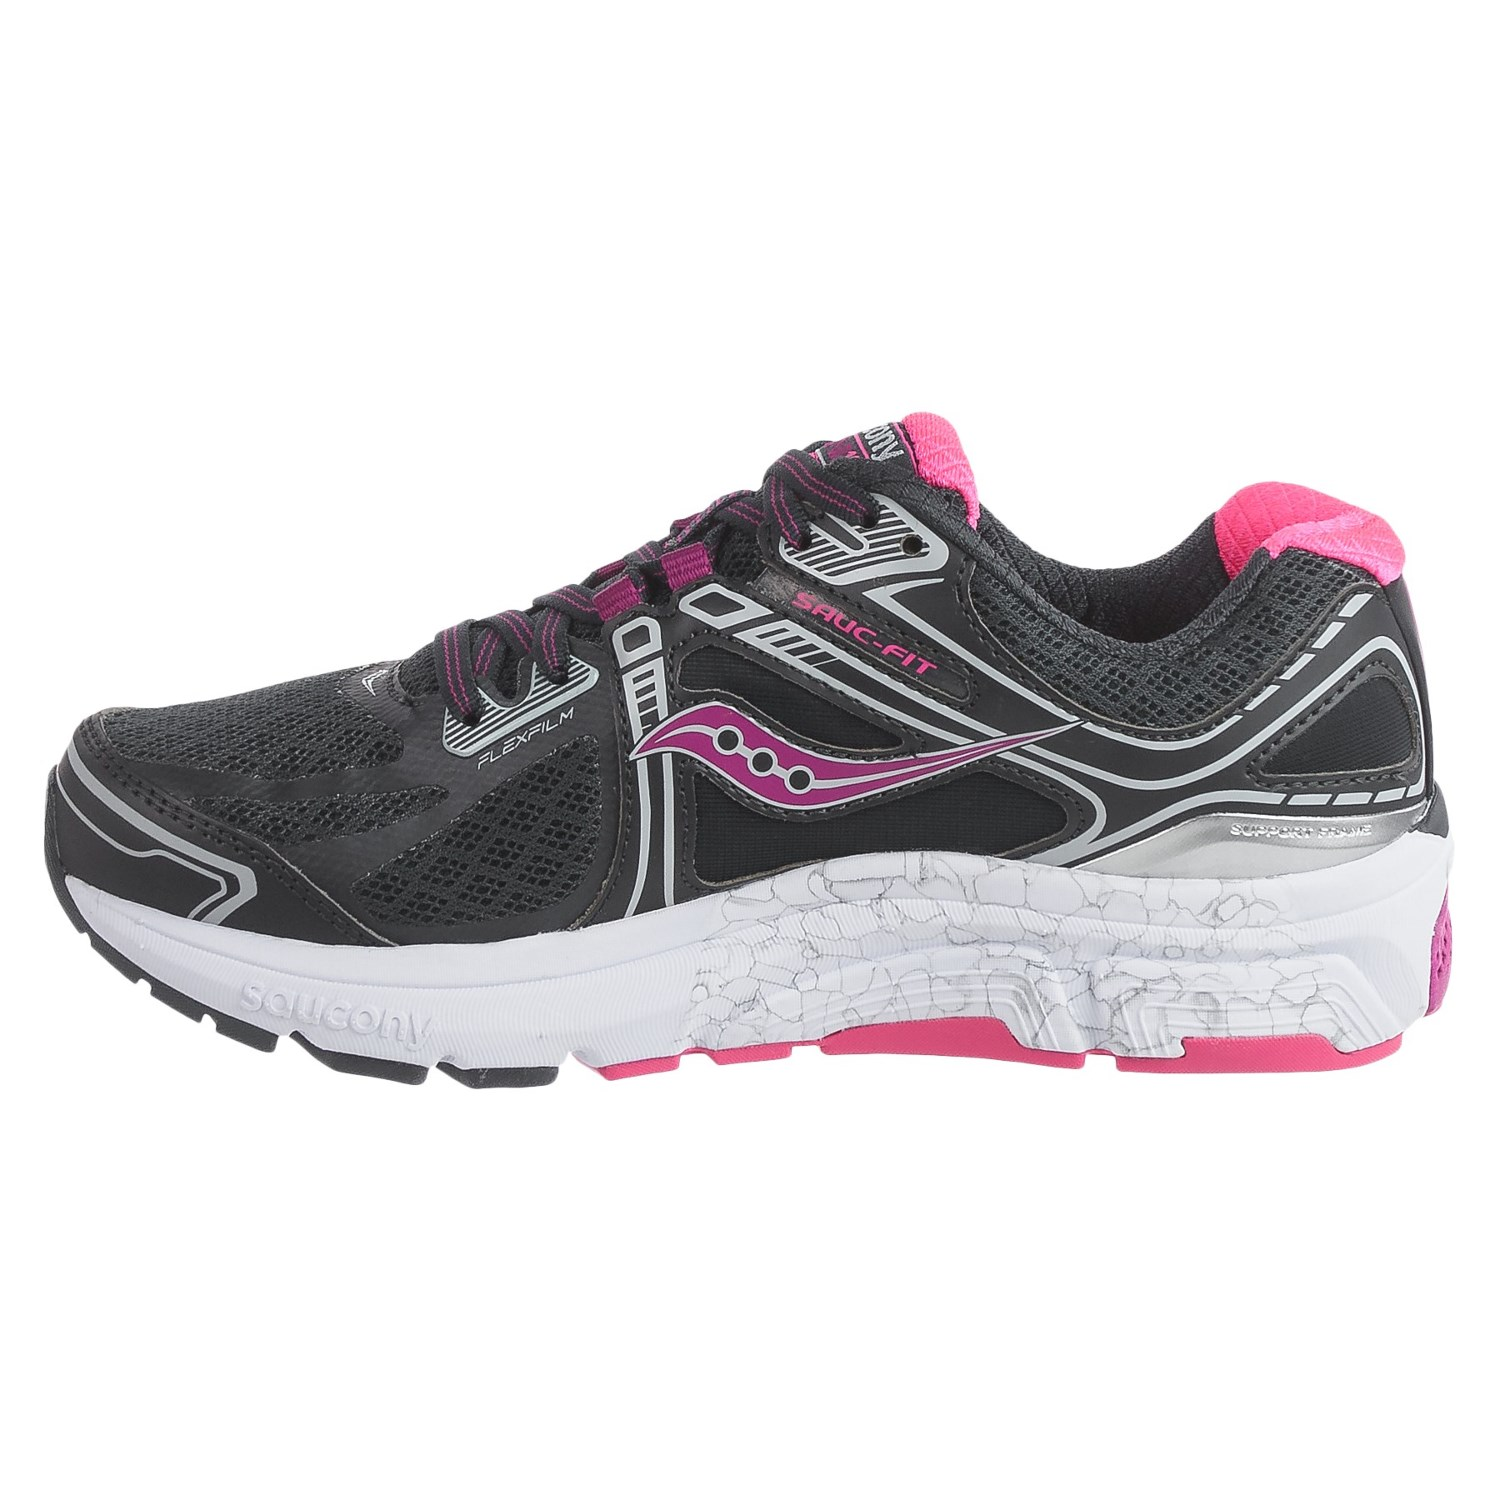 Saucony Omni 15 Running Shoes For Women Save 70